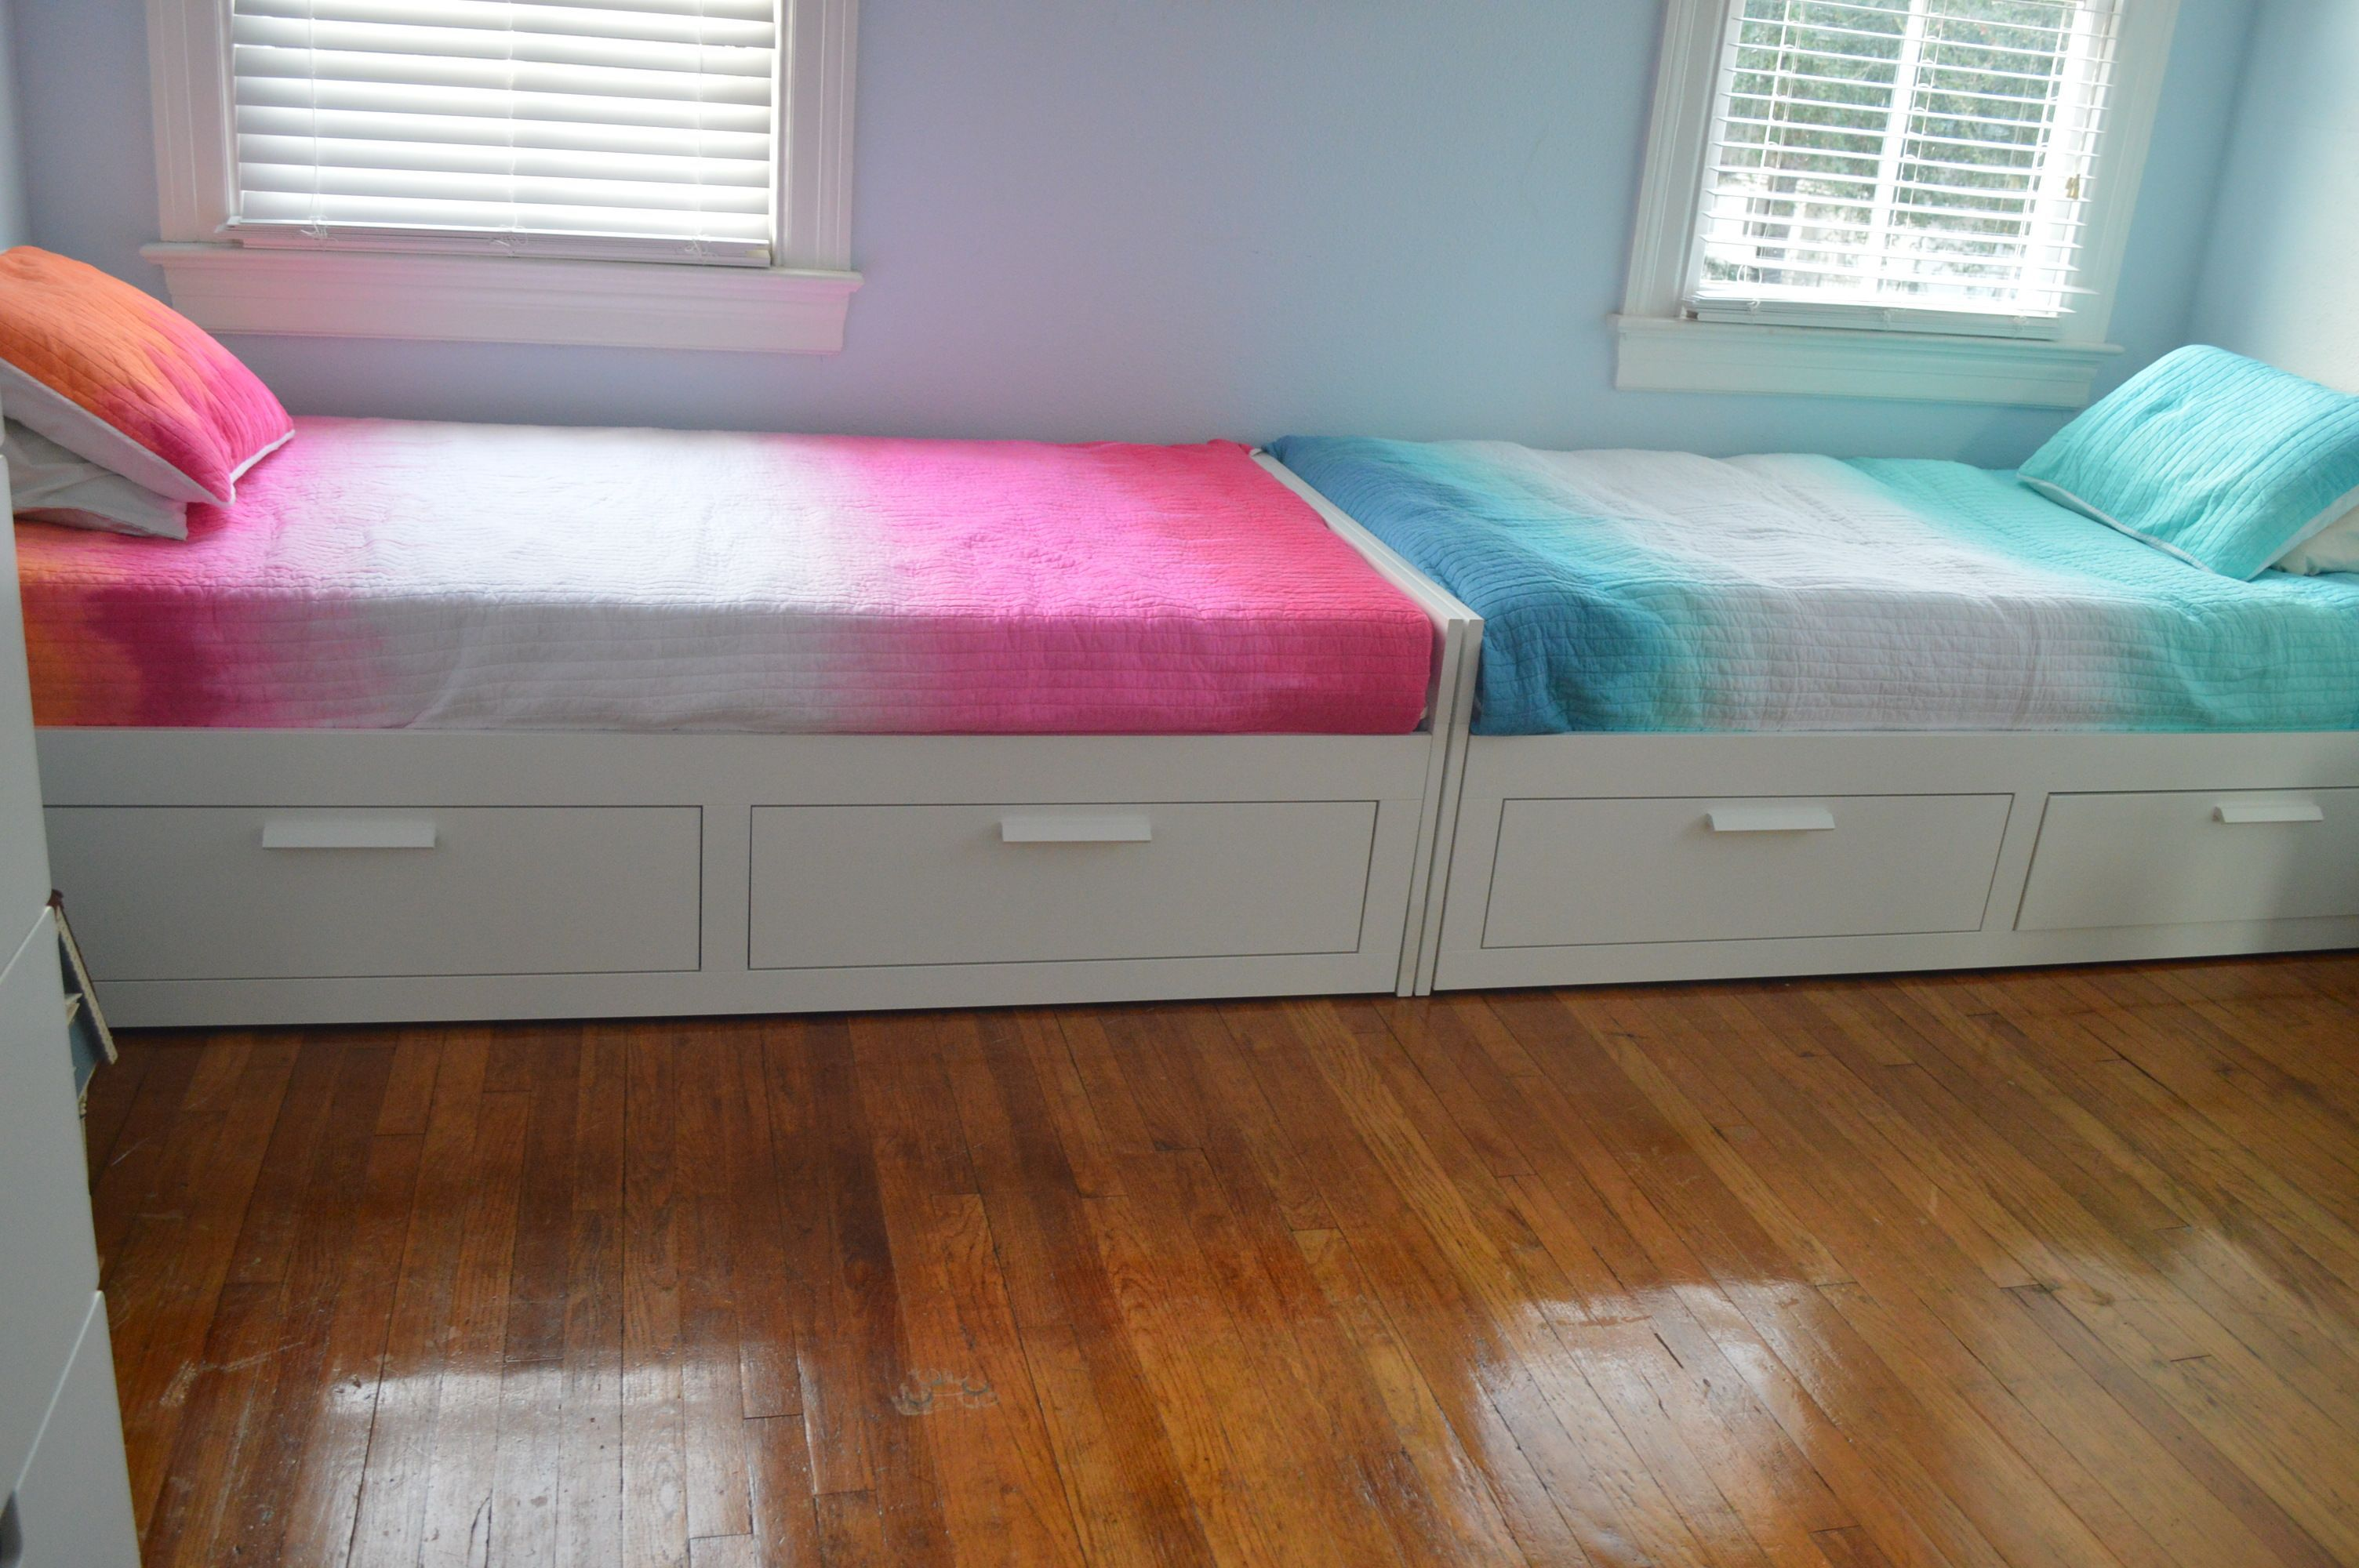 Brimnes Twin Beds From Ikea Cynthia Rowley Ombre